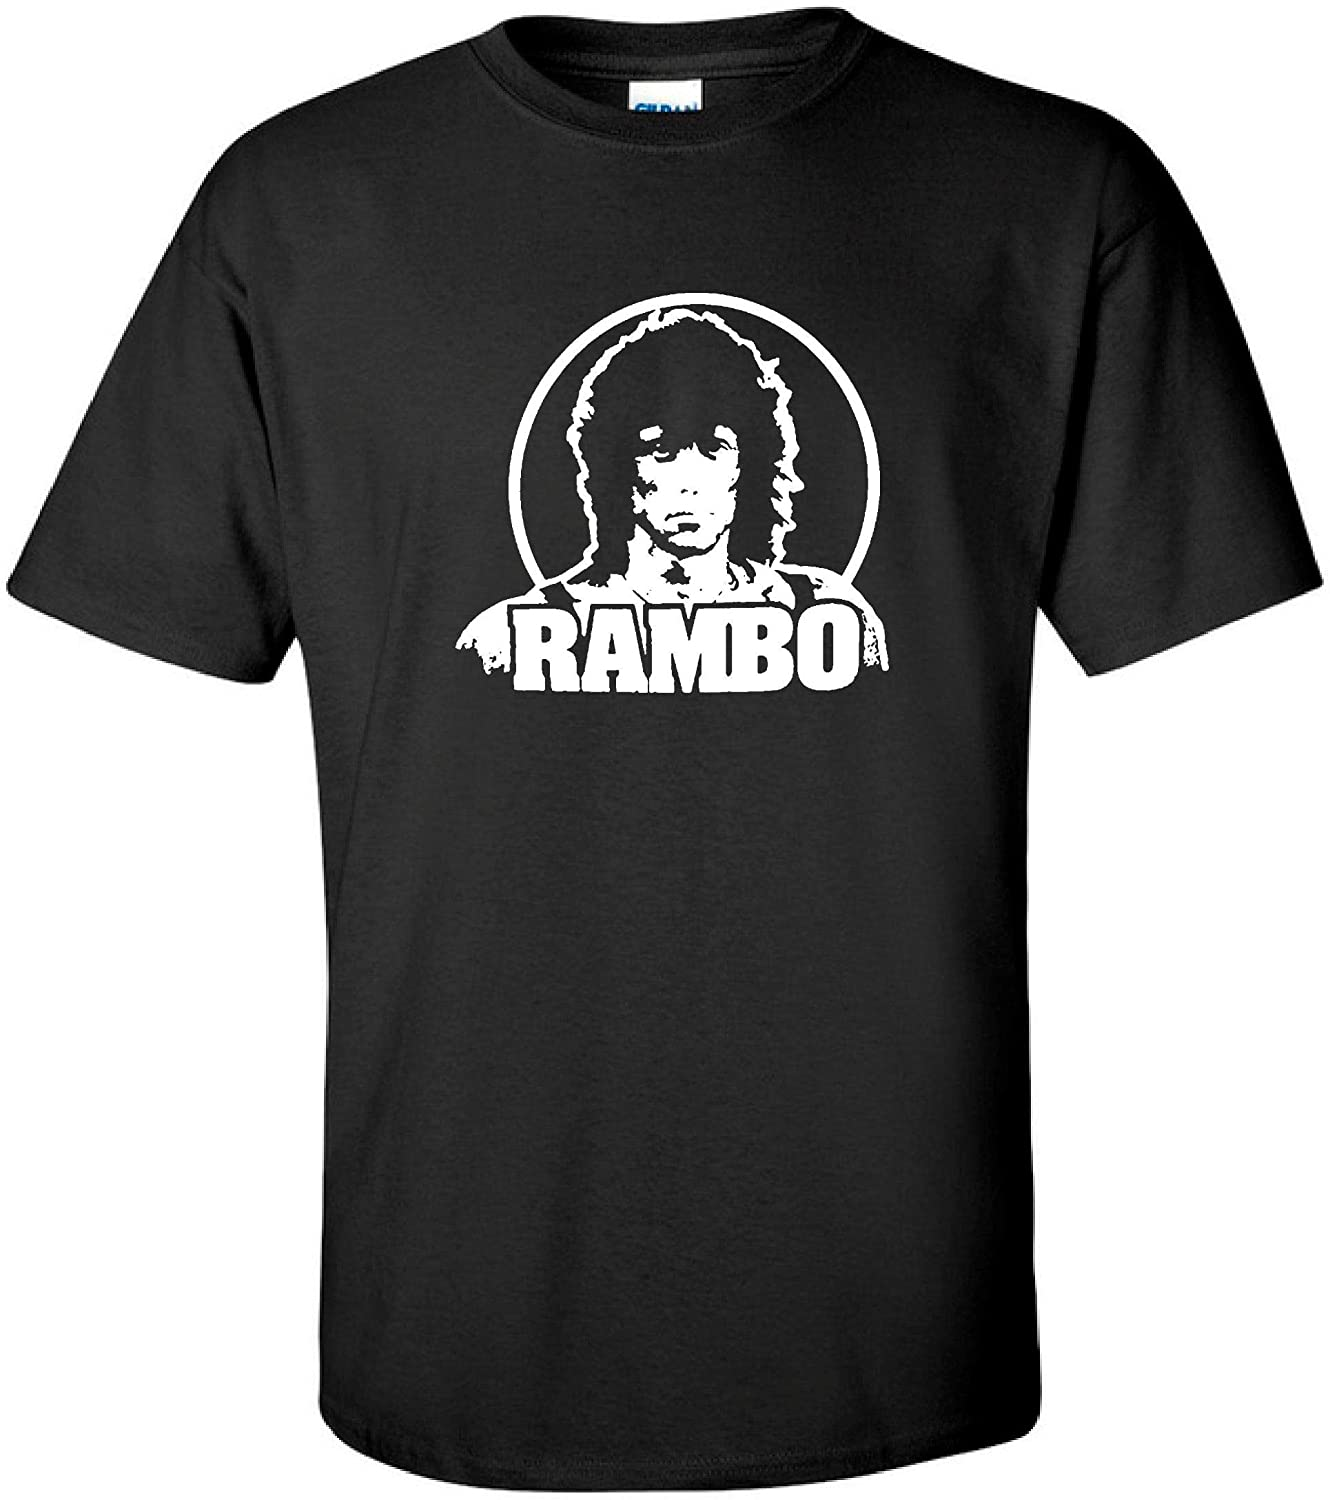 Rambo 80s Retro Movie Black T-Shirt